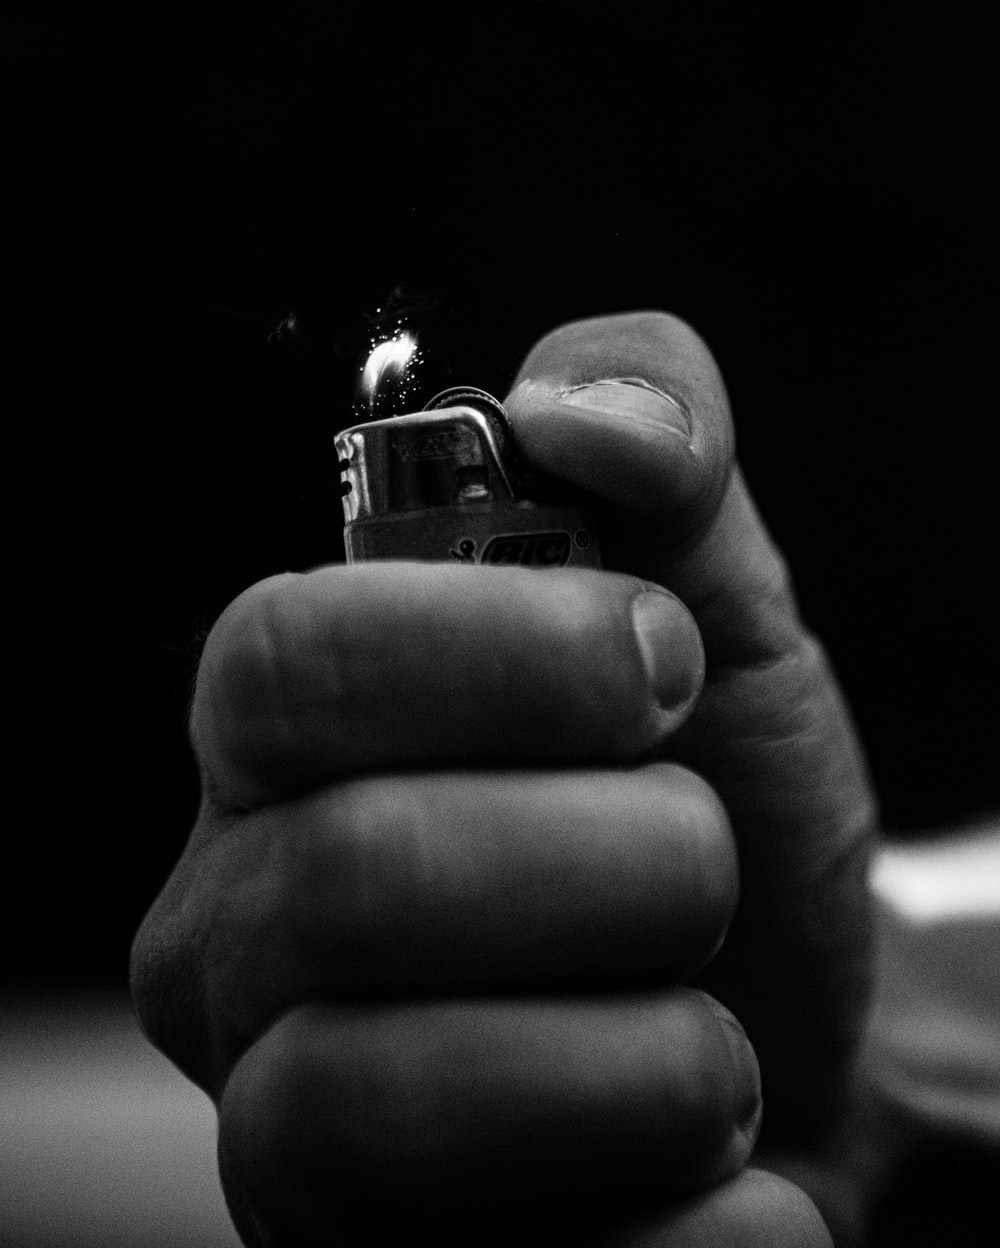 grayscale photo of person holding lighter